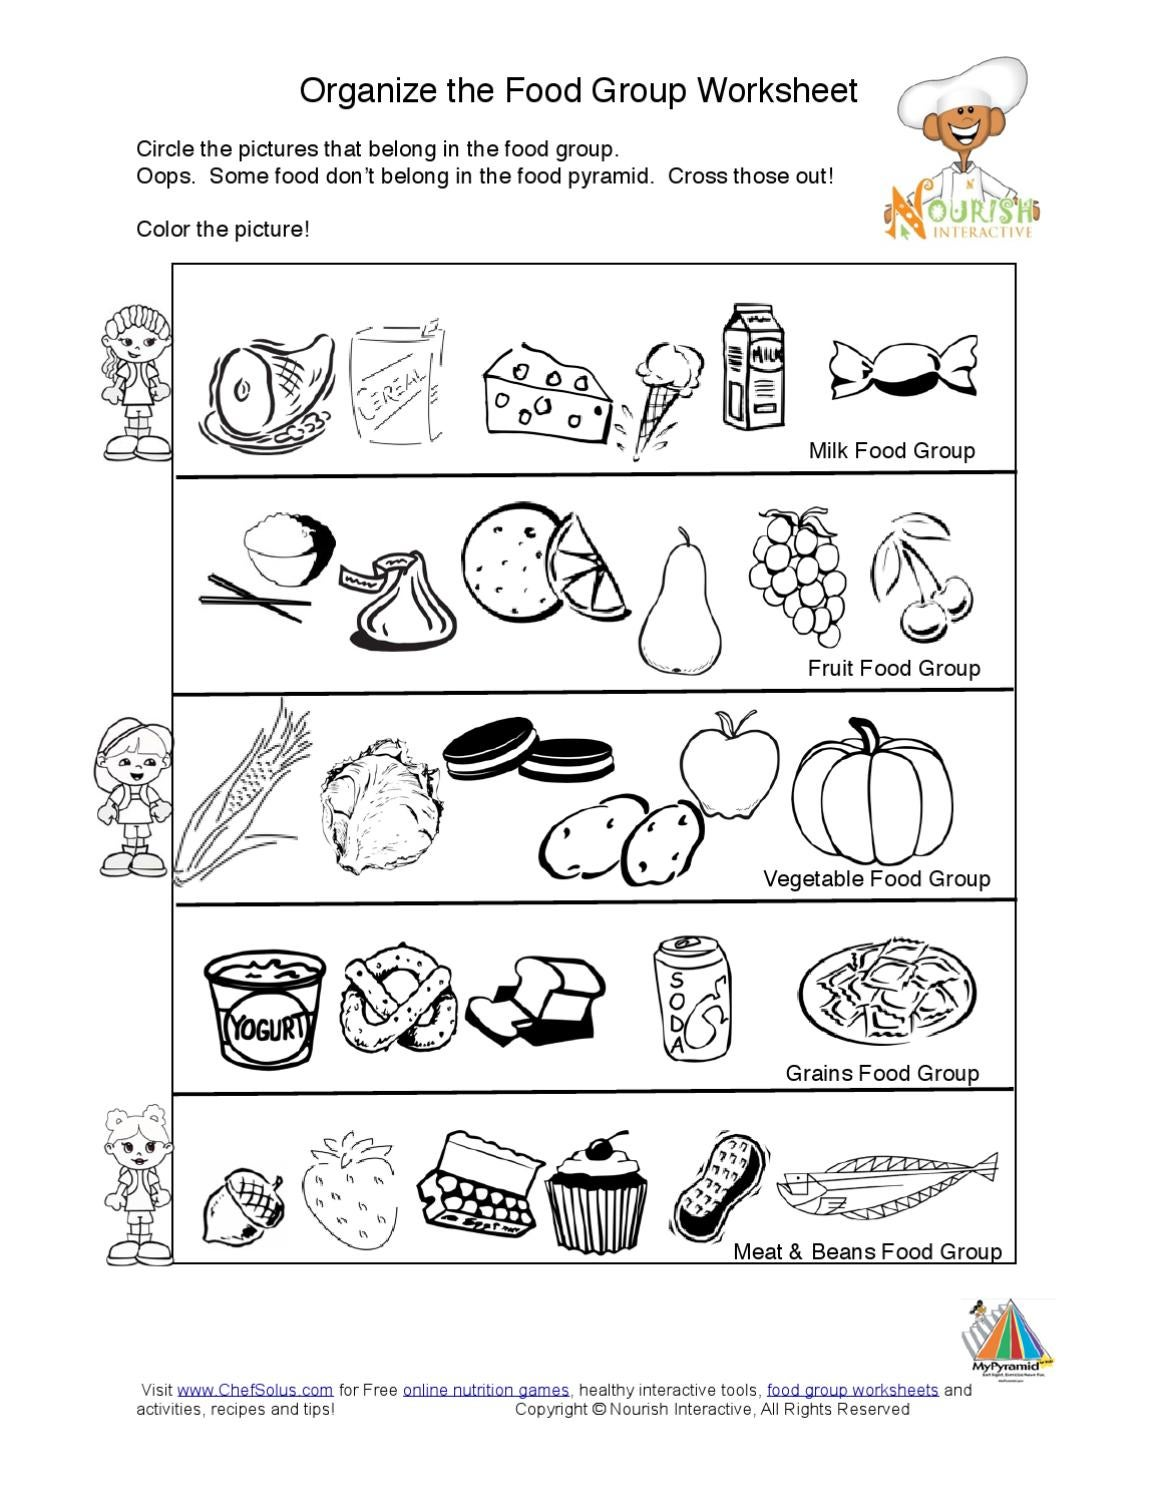 kids-food-pyramid-food-groups-learning-nutrition-worksheet-K-5 ...